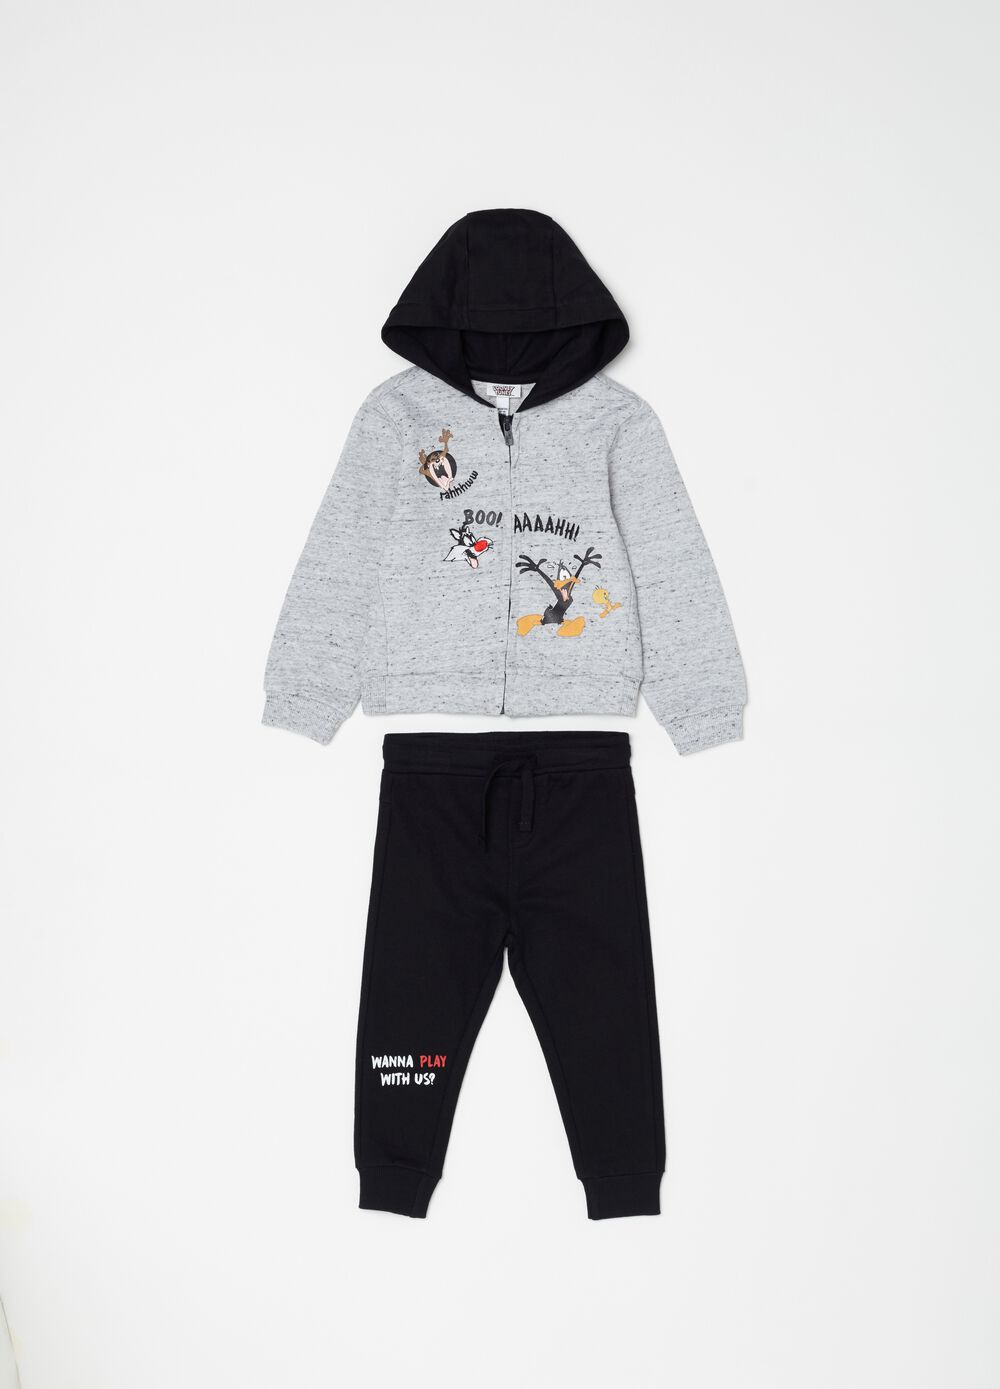 Warner Bros Looney Tunes jogging set with zip